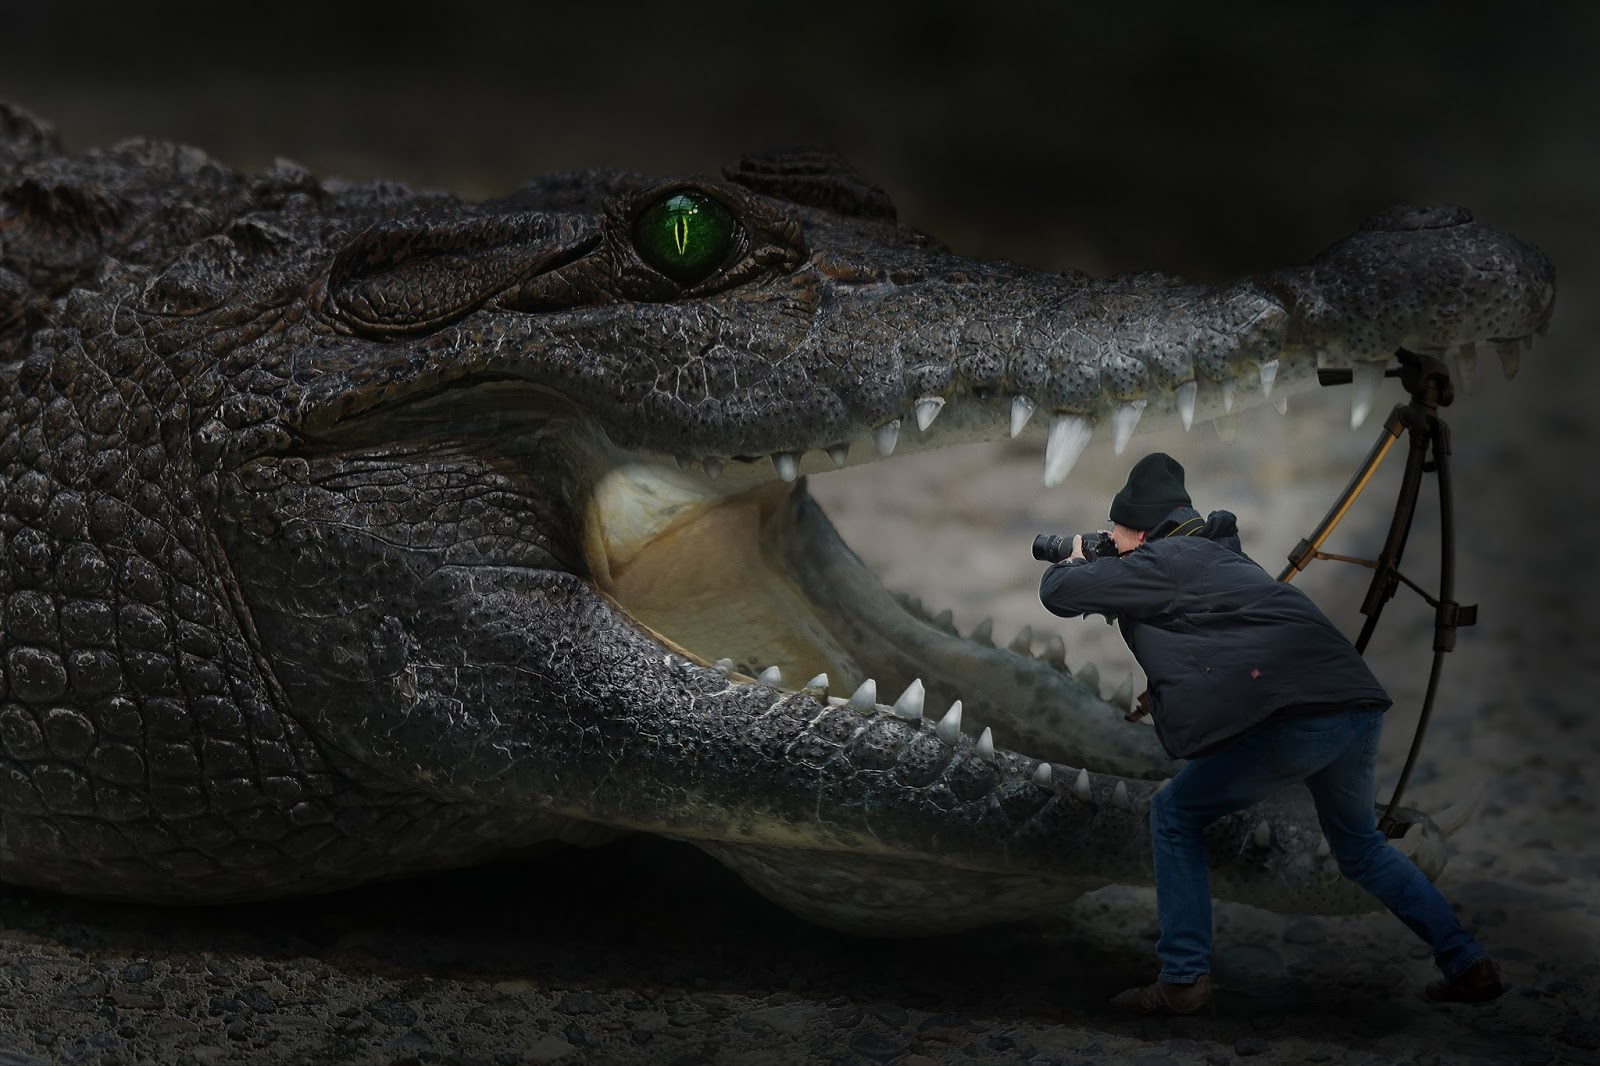 A funny picture of a tiny many taking photo of a crocodile.